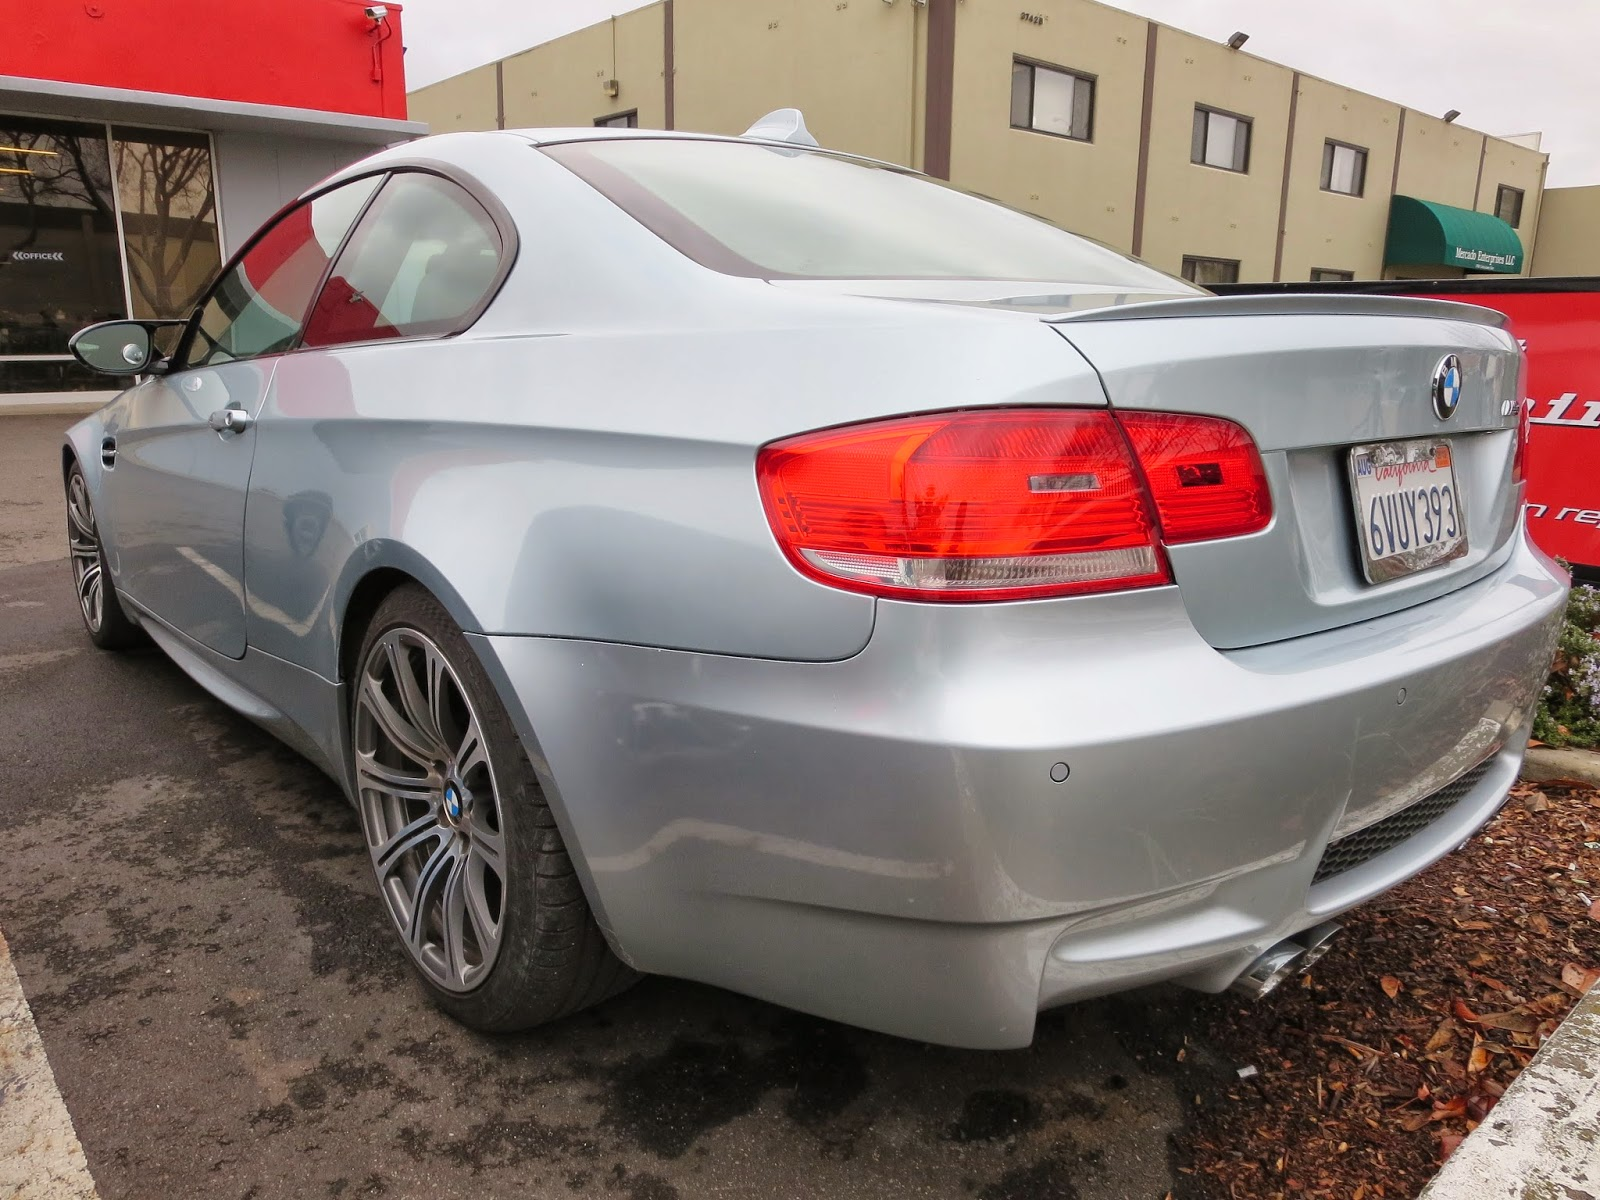 BMW M3 after auto body repair at Almost Everything's collision center